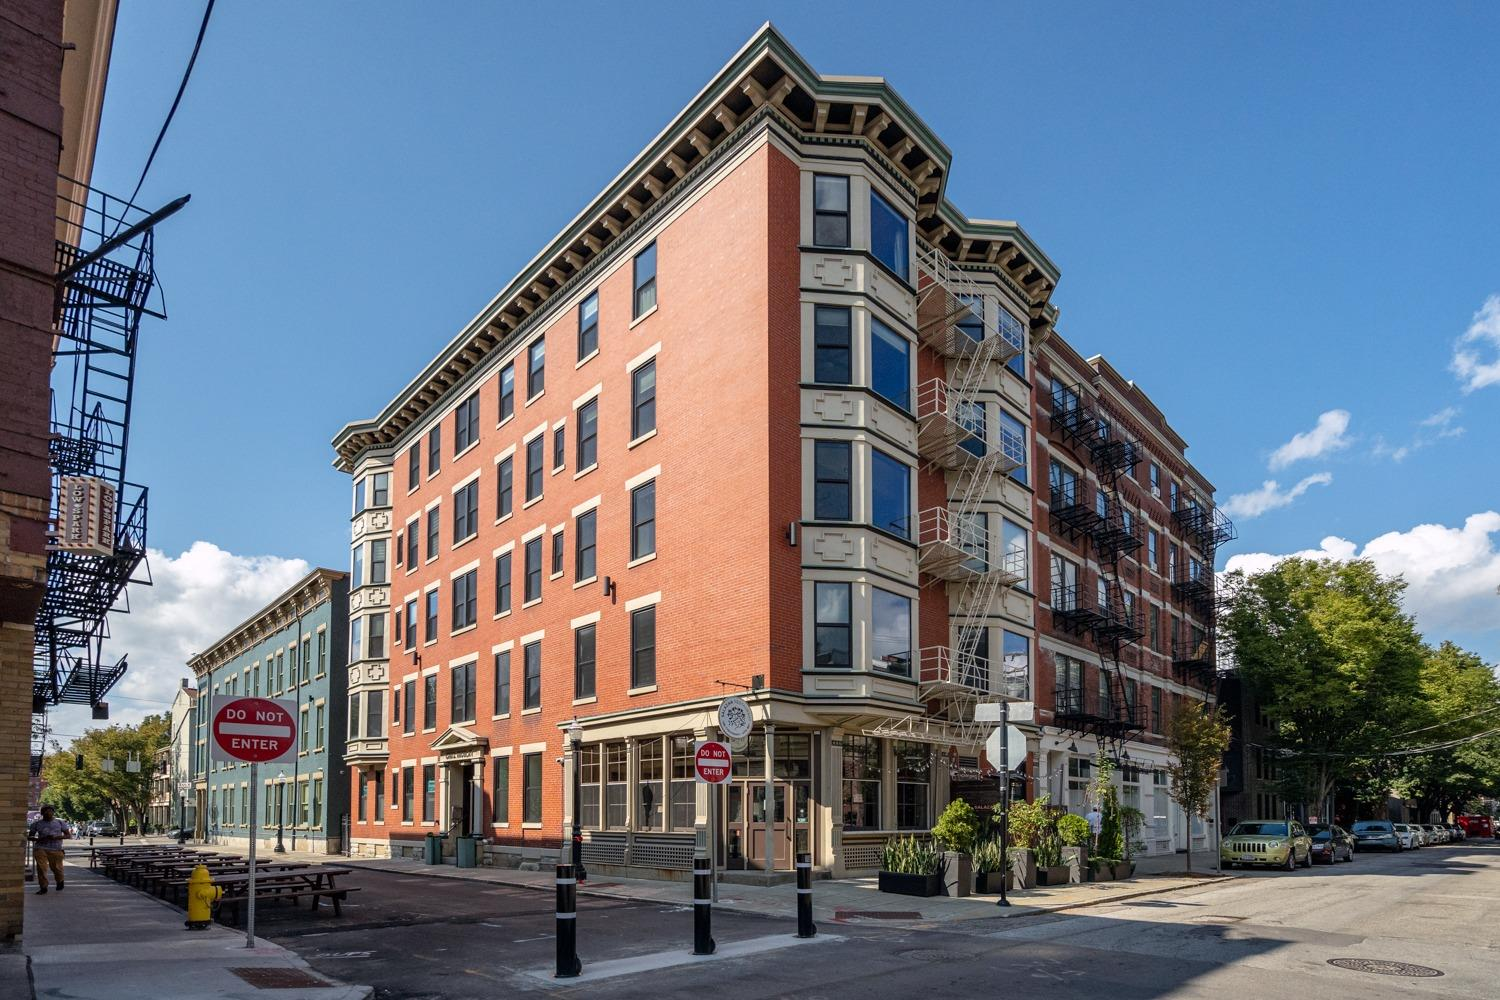 Stunning renovation in the Nicolay Condos on the corner of Republic and 14th Street just above the popular Salazar restaurant.